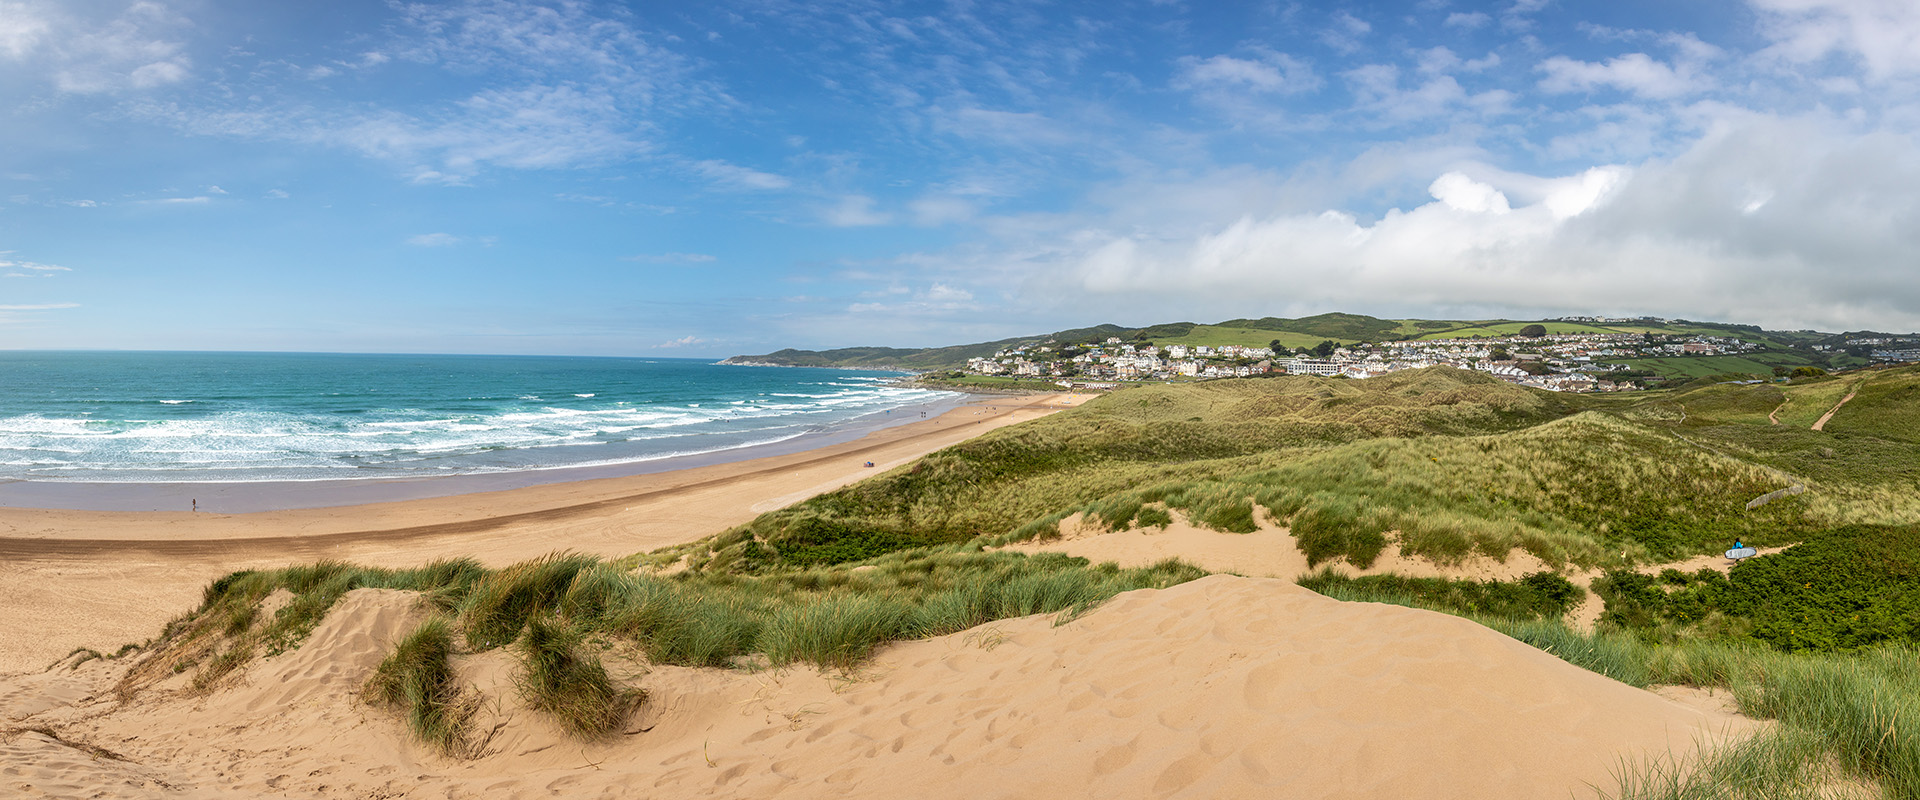 UK holidaymakers confidence growing